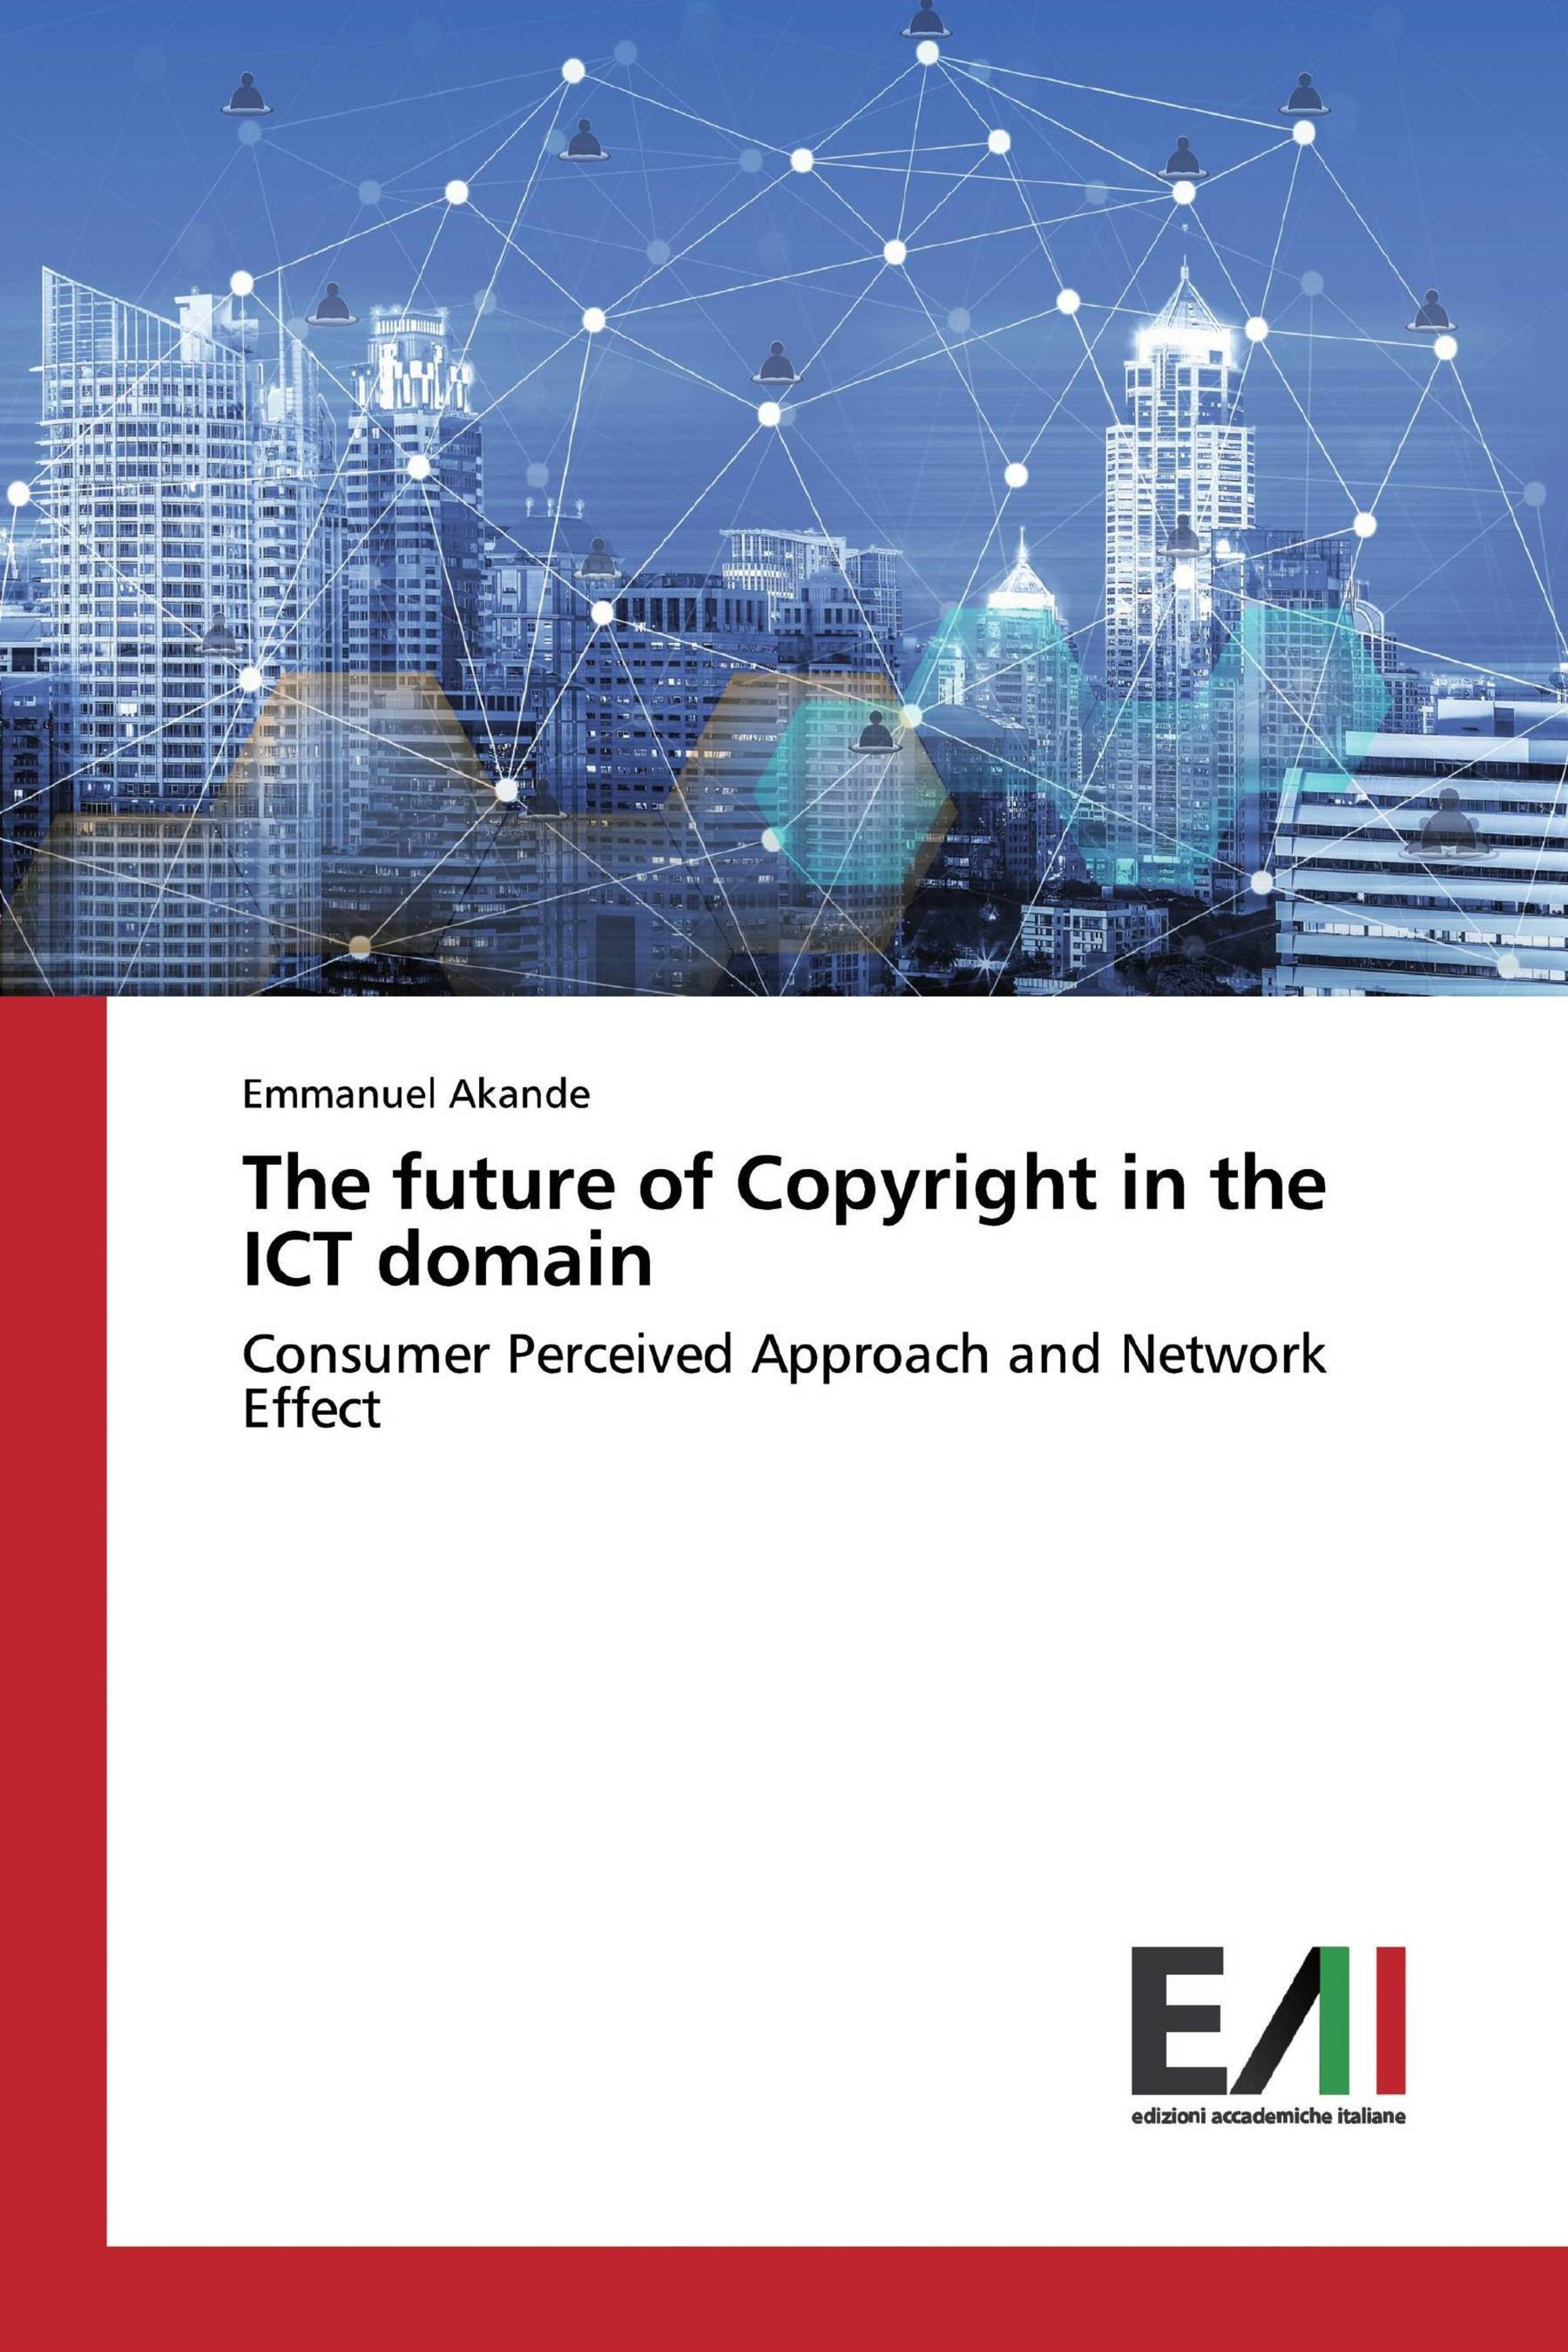 The future of Copyright in the ICT domain